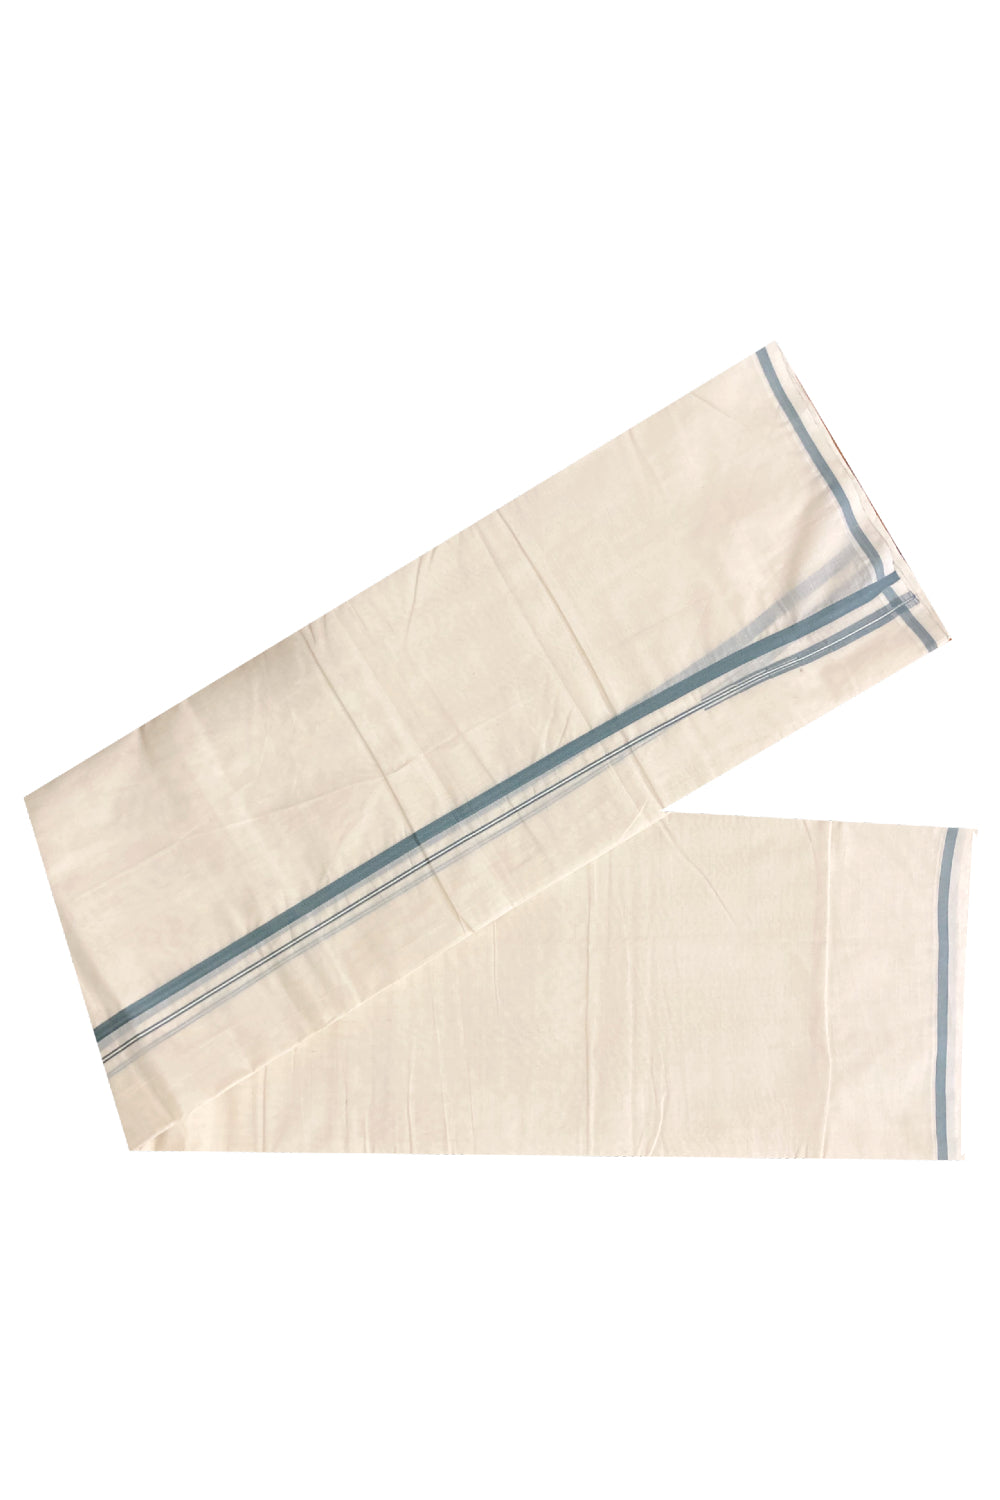 Off White Cotton Mundu with Grey Puliyilakkara Border (South Indian Dhoti)